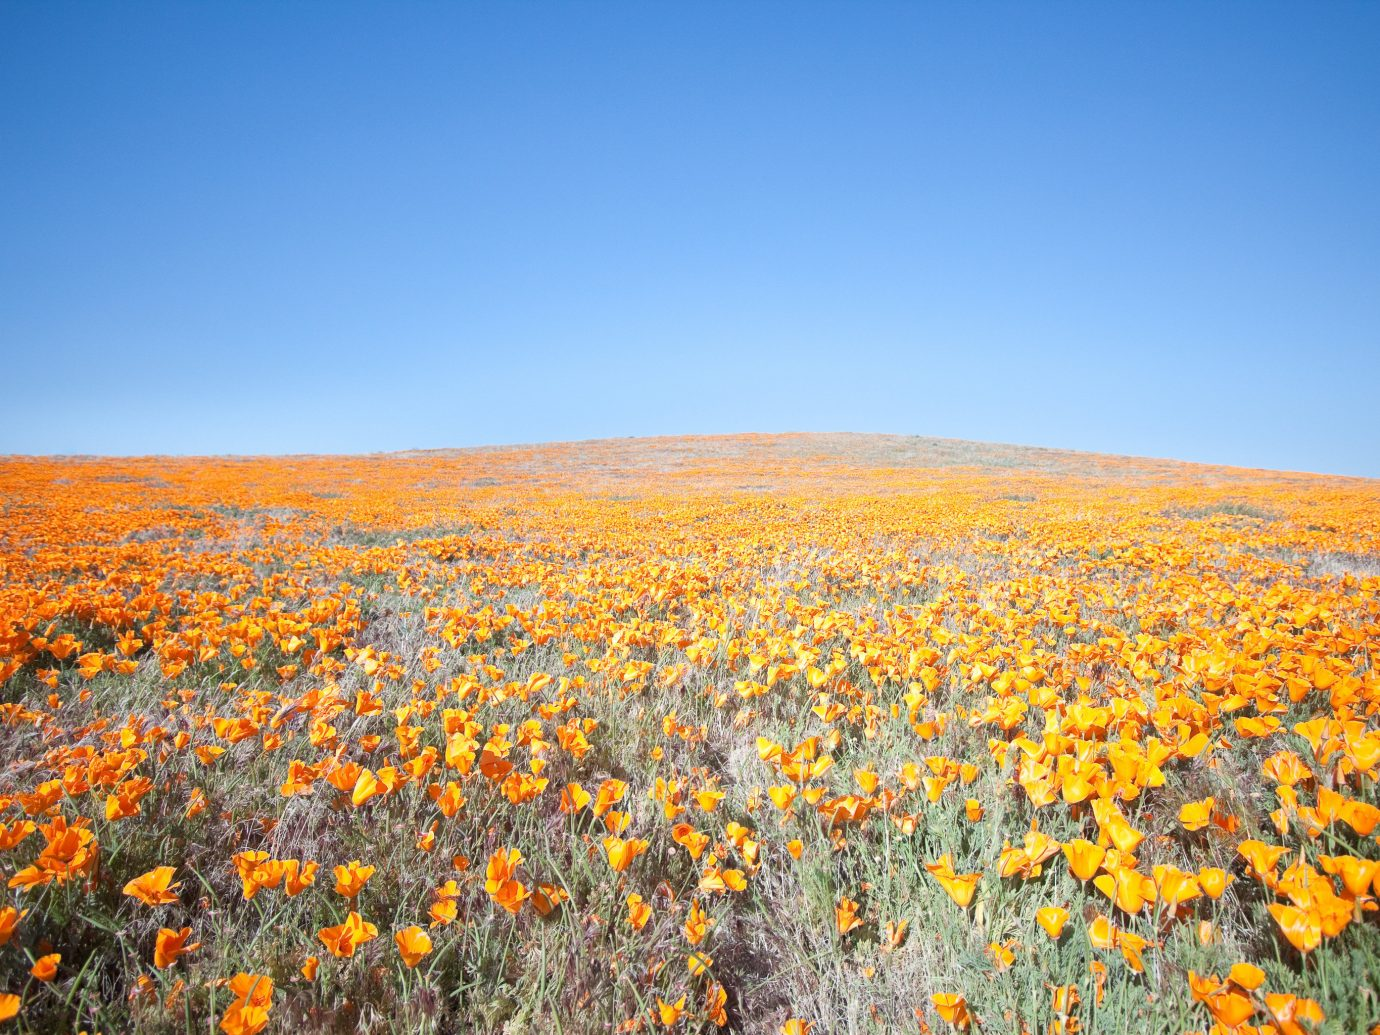 Poppy Reserve in Antelope Valley, California